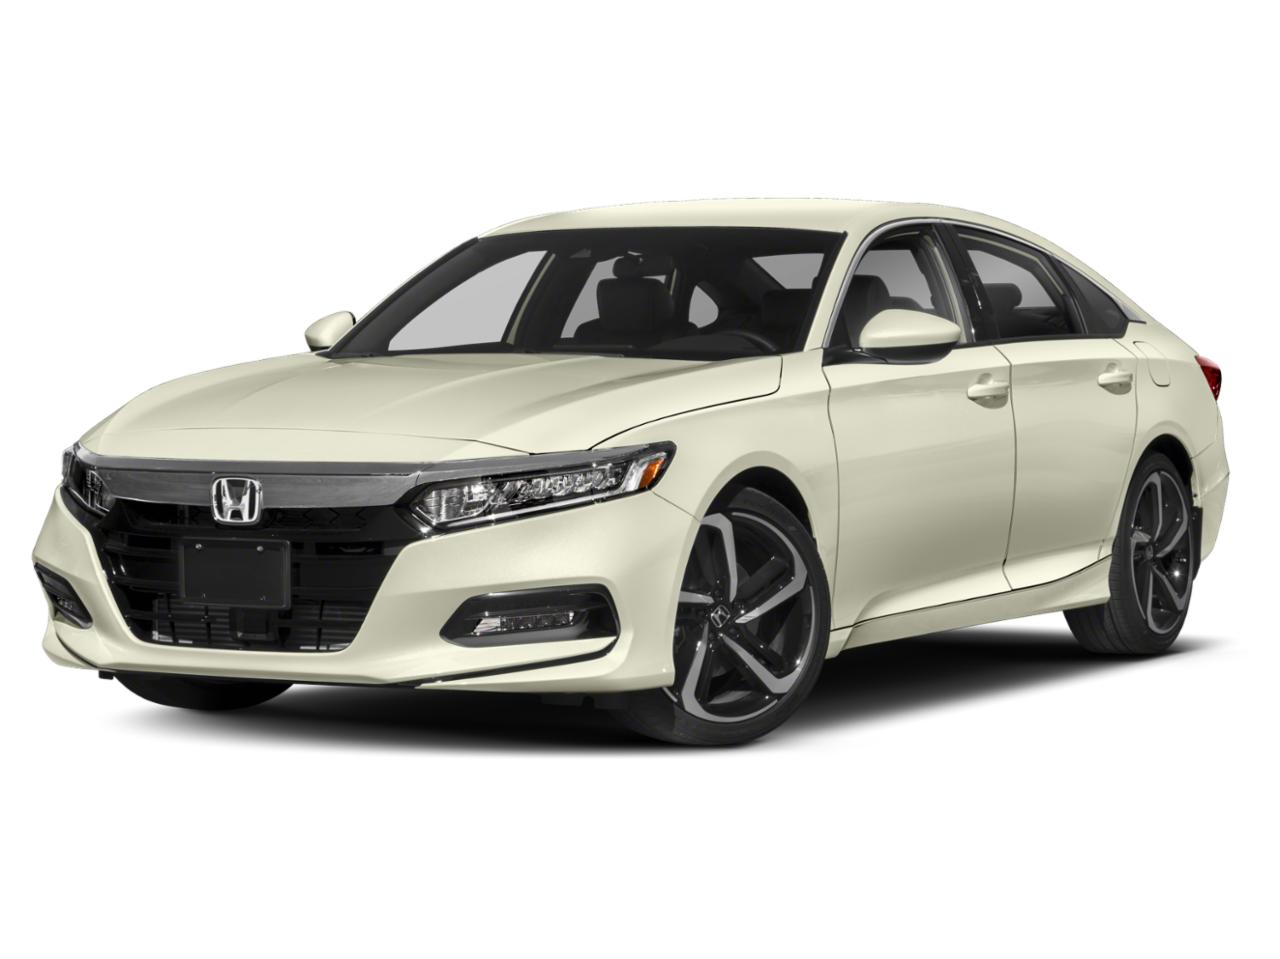 2018 Honda Accord Sedan Vehicle Photo in Colma, CA 94014